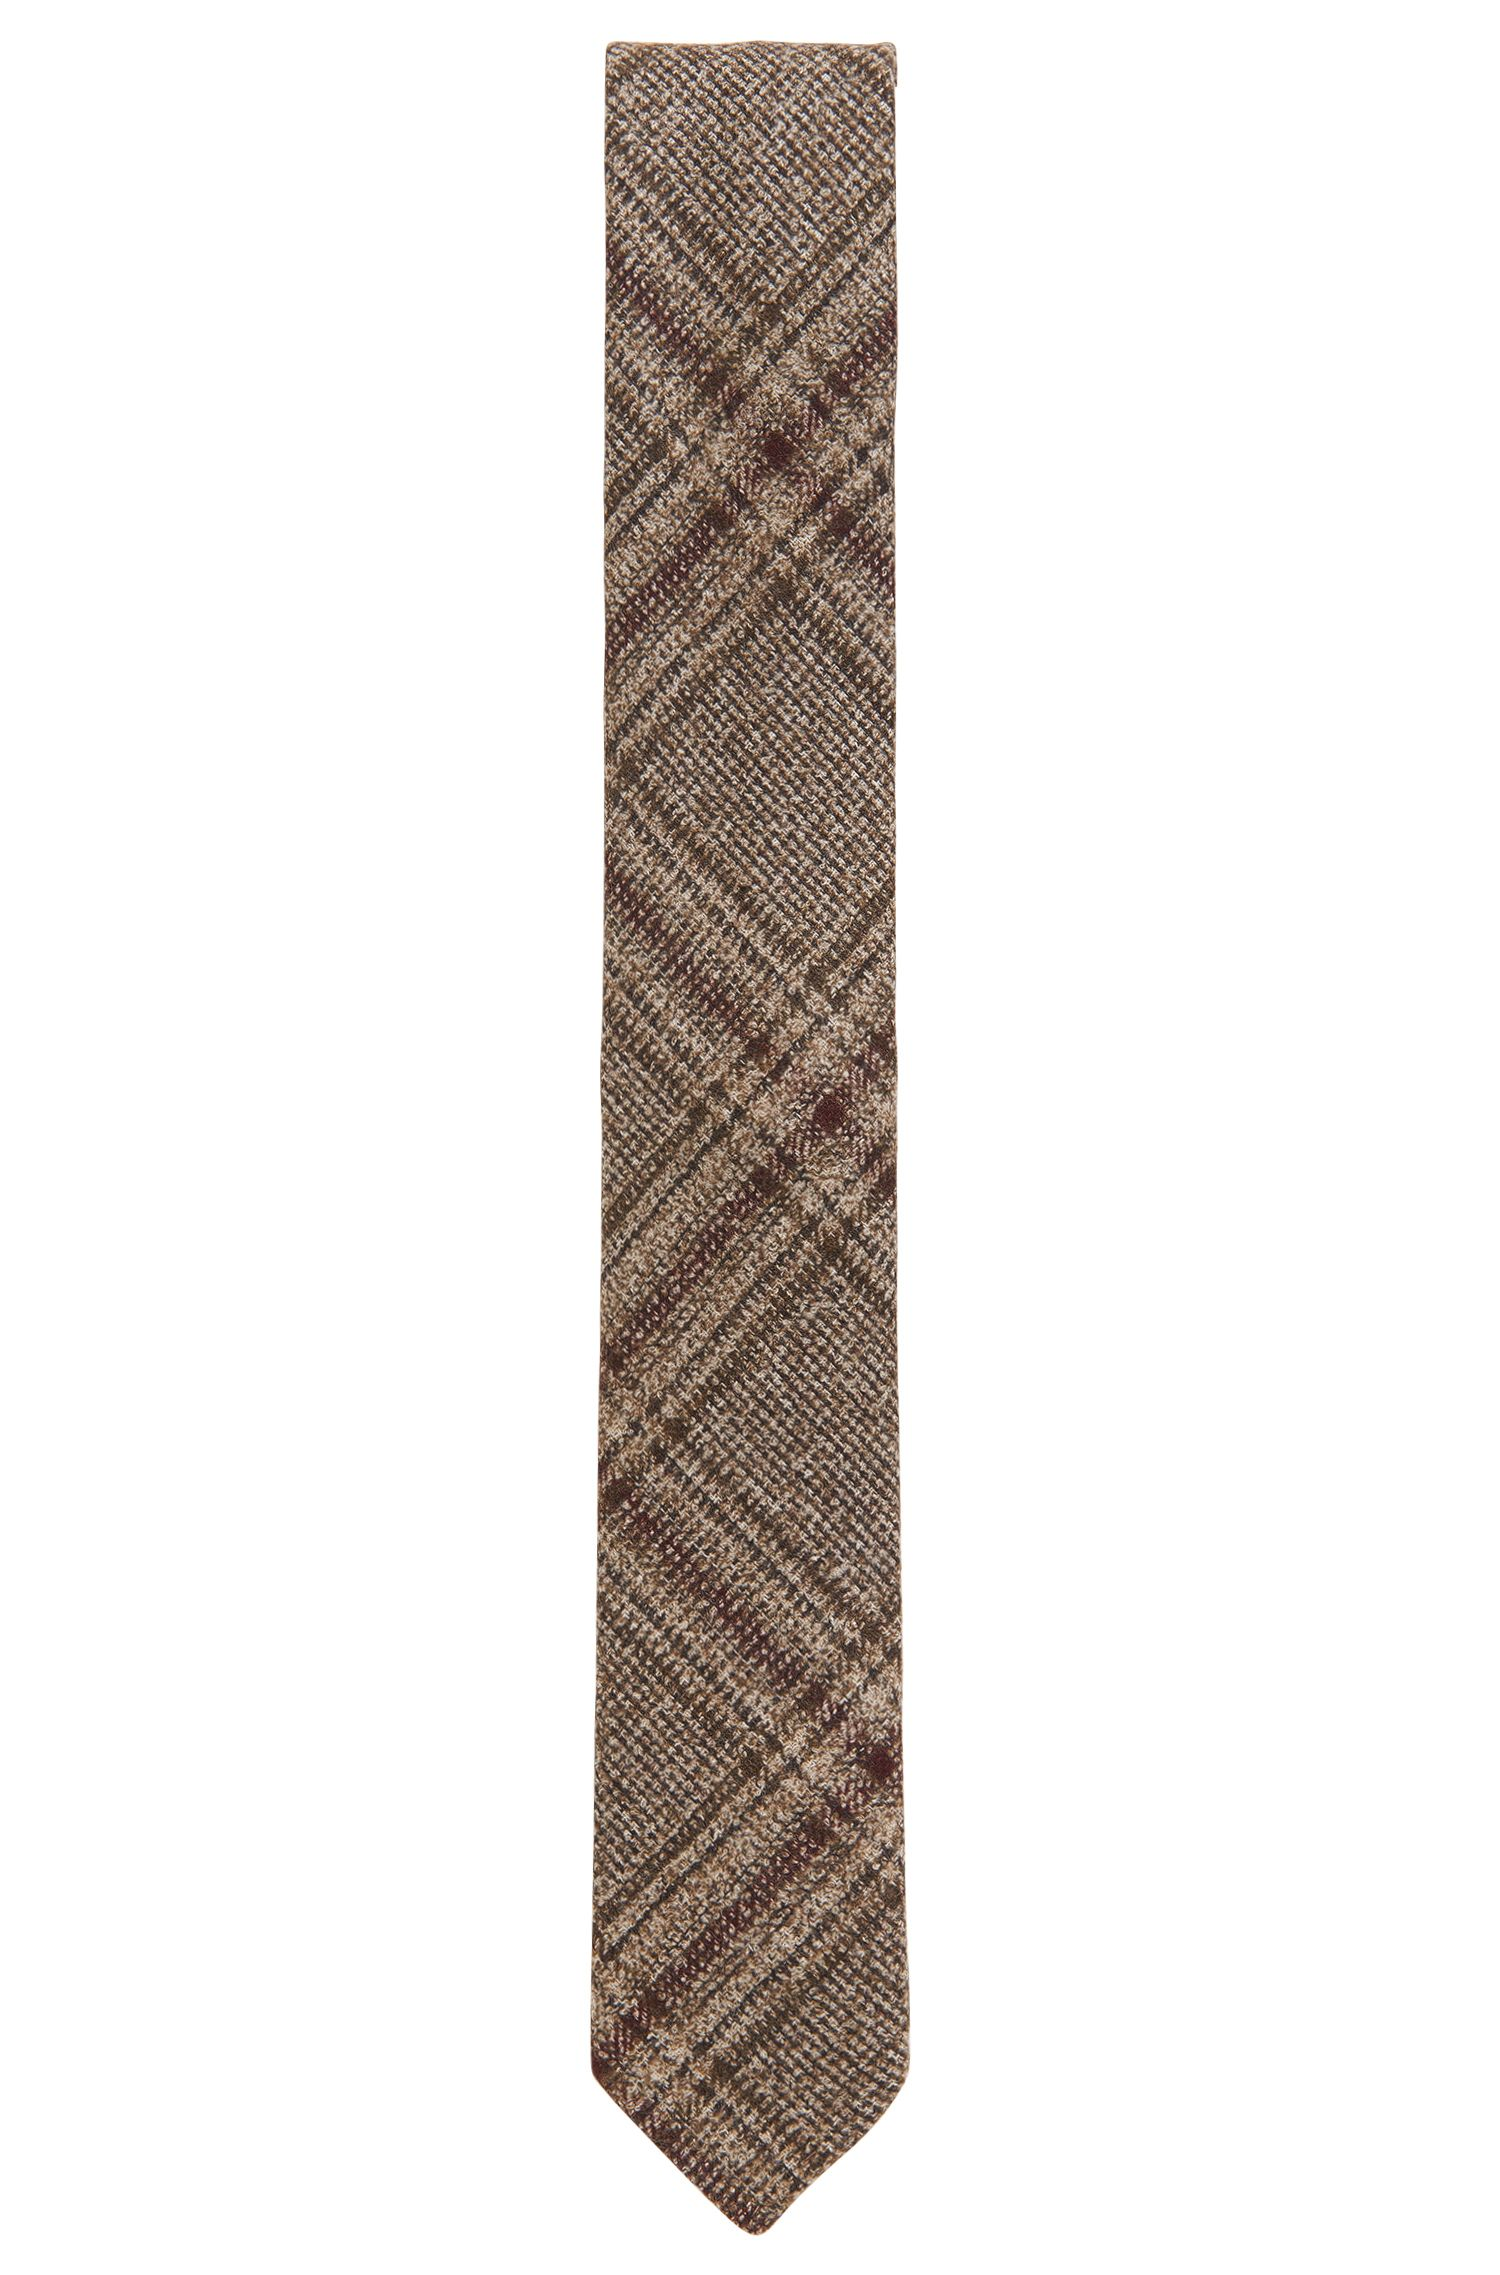 Plaid Wool Blend Tie, Slim | Tie 6 cm Soft